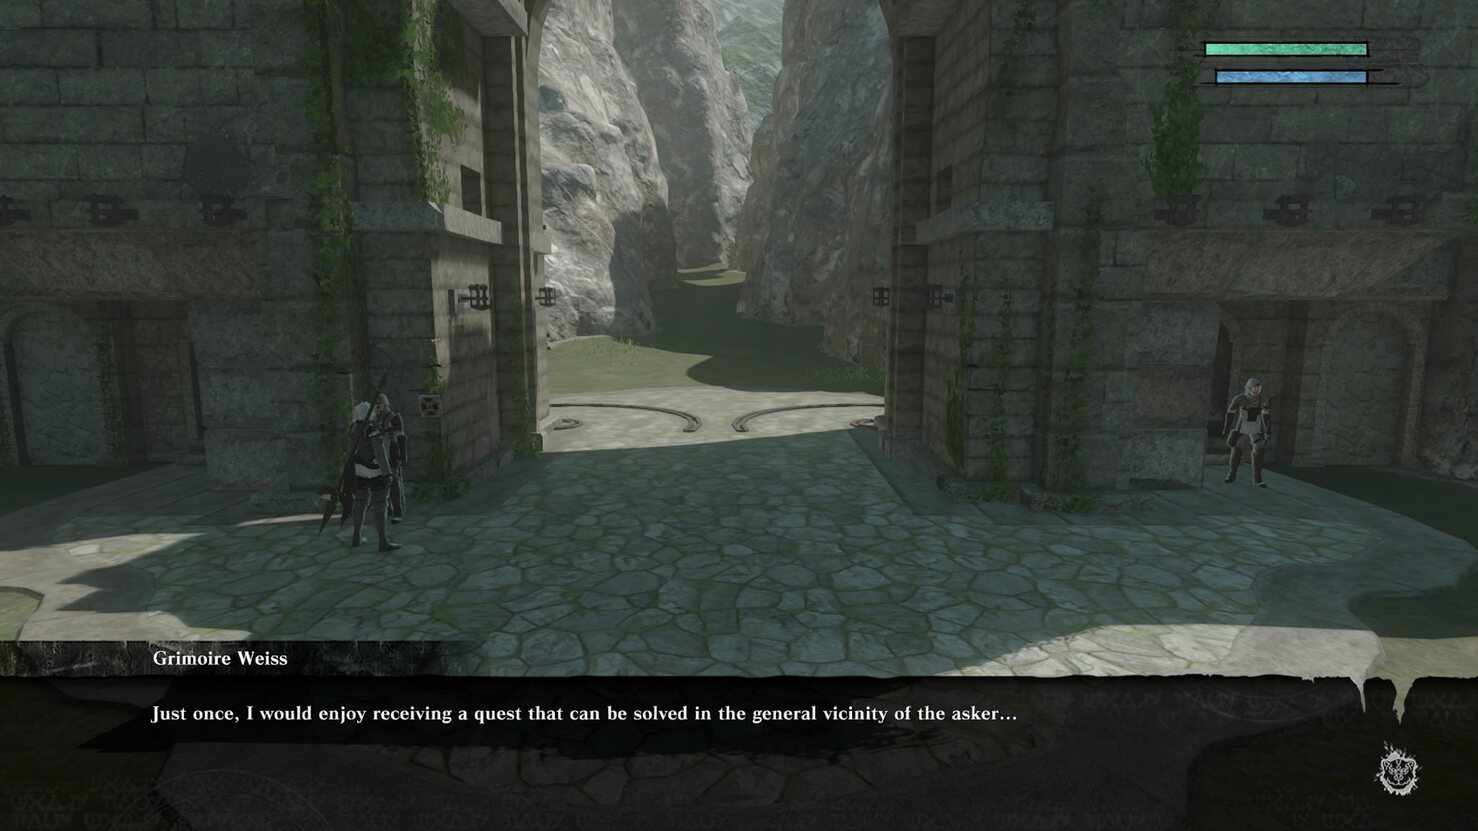 Nier Replicant ver. 122474487139... handle with care side quest